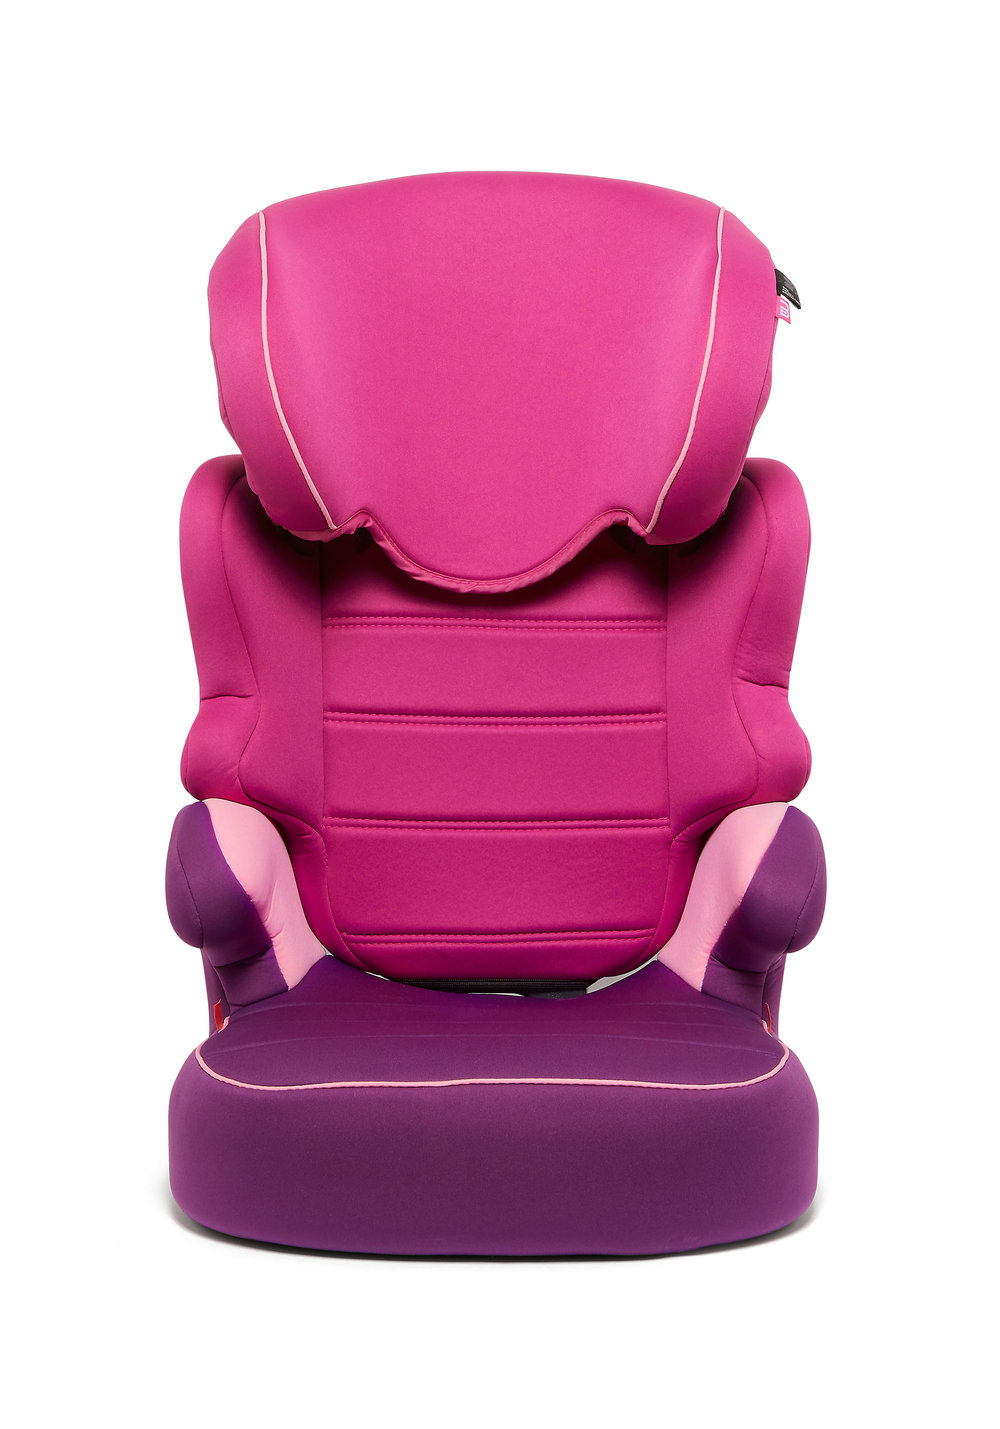 Save money on the Mothercare Milan Highback Booster Car Seat